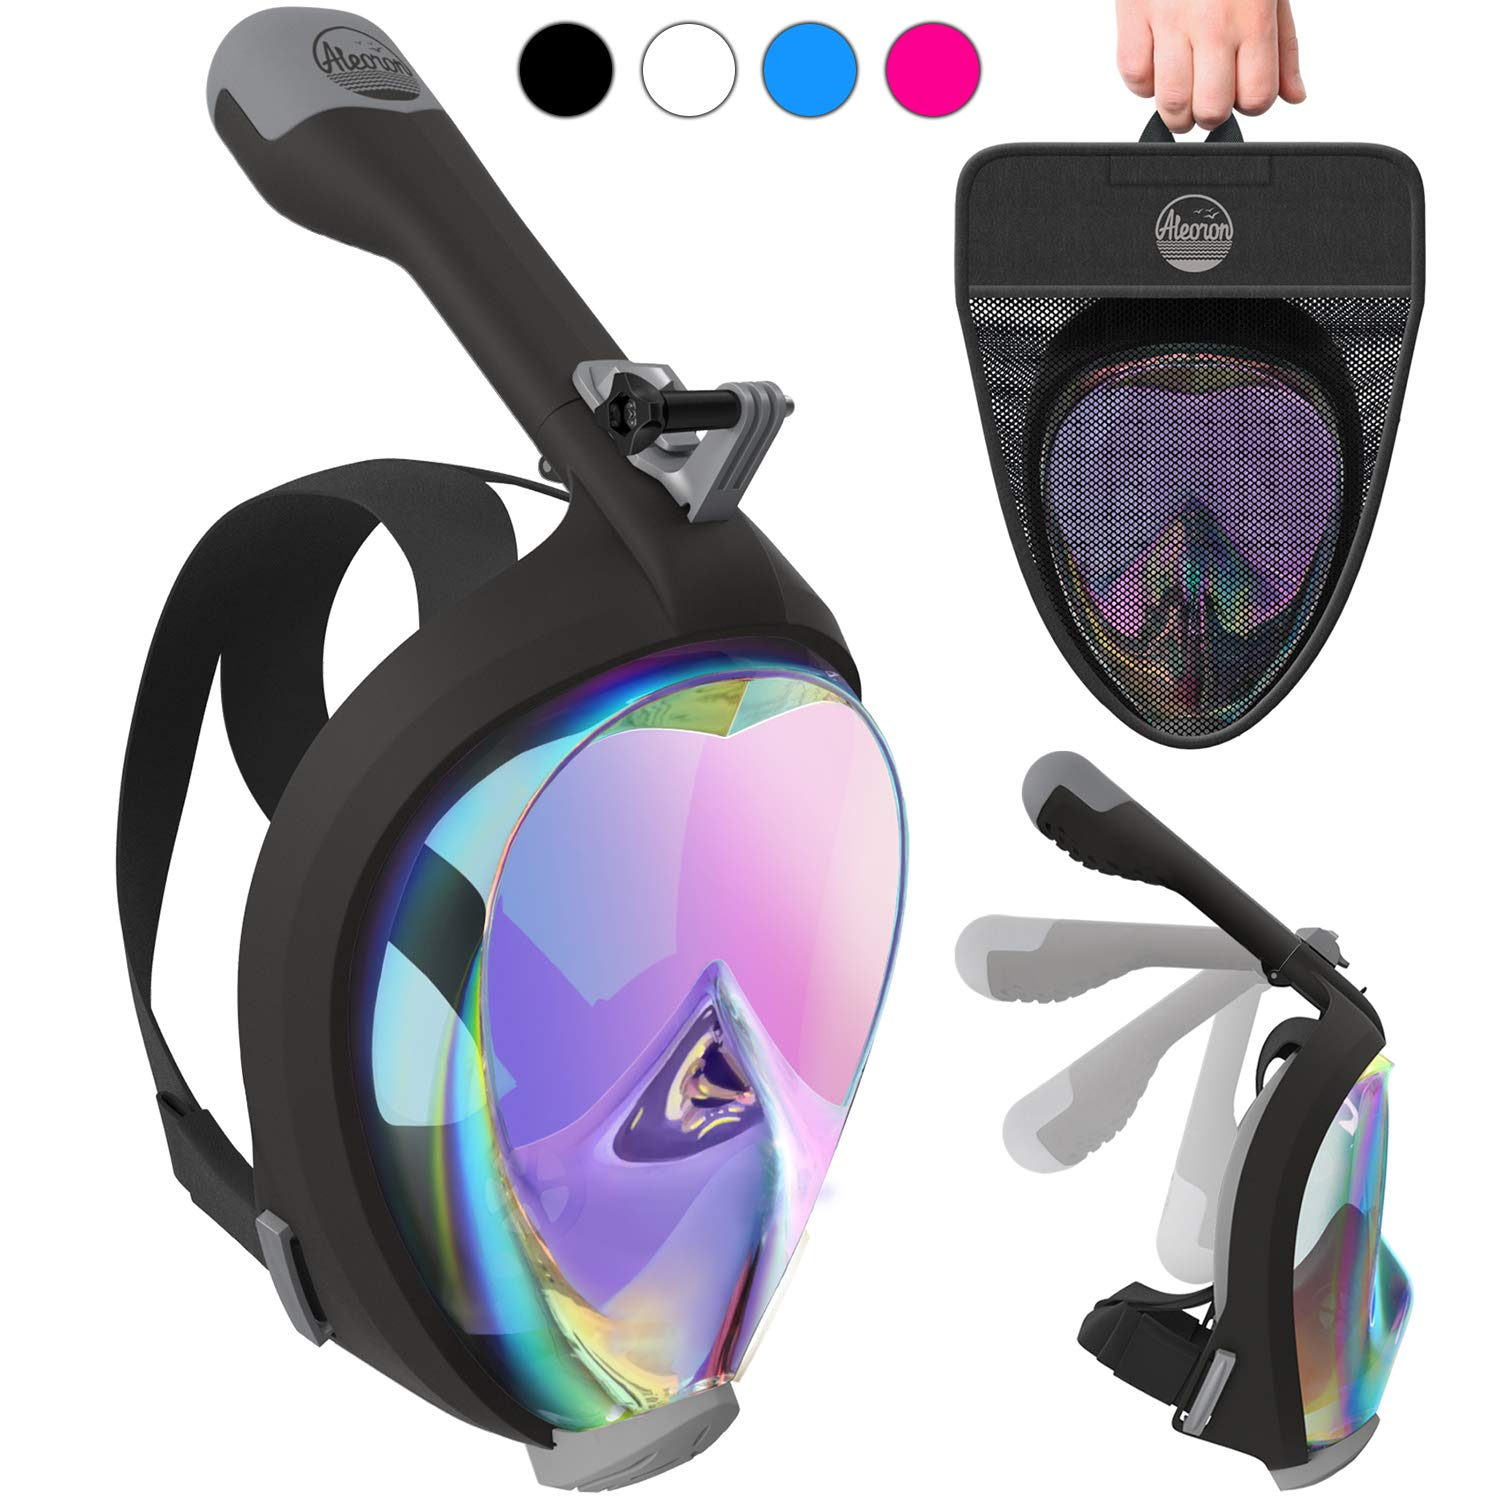 Aleoron - Full Face Snorkel Mask Foldable UV Easybreath - 2.0 Panoramic 180 Seaview Snorkeling Mask with Action Camera Mount - Scuba Mask Anti Fog for Adults & Youth (Women & Men) by Aleoron